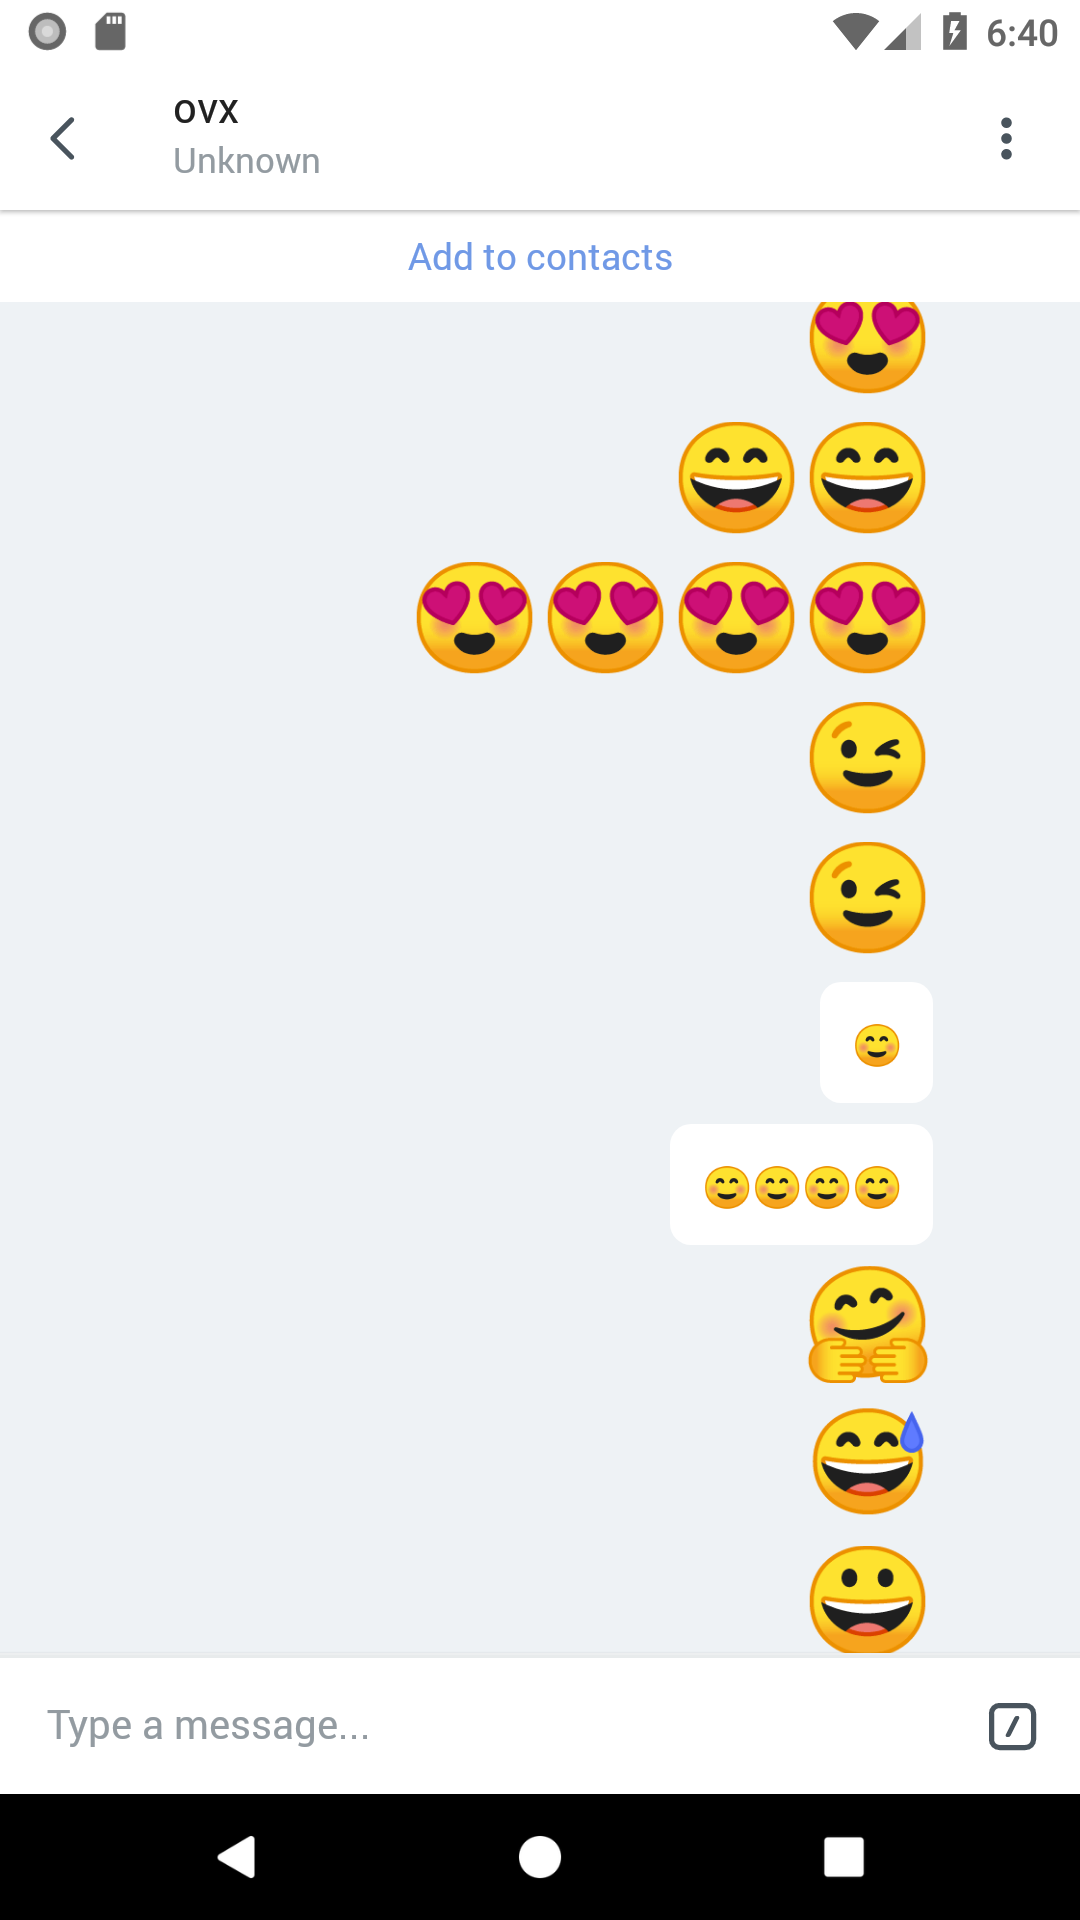 If a message contains only an emoji, show it without chat